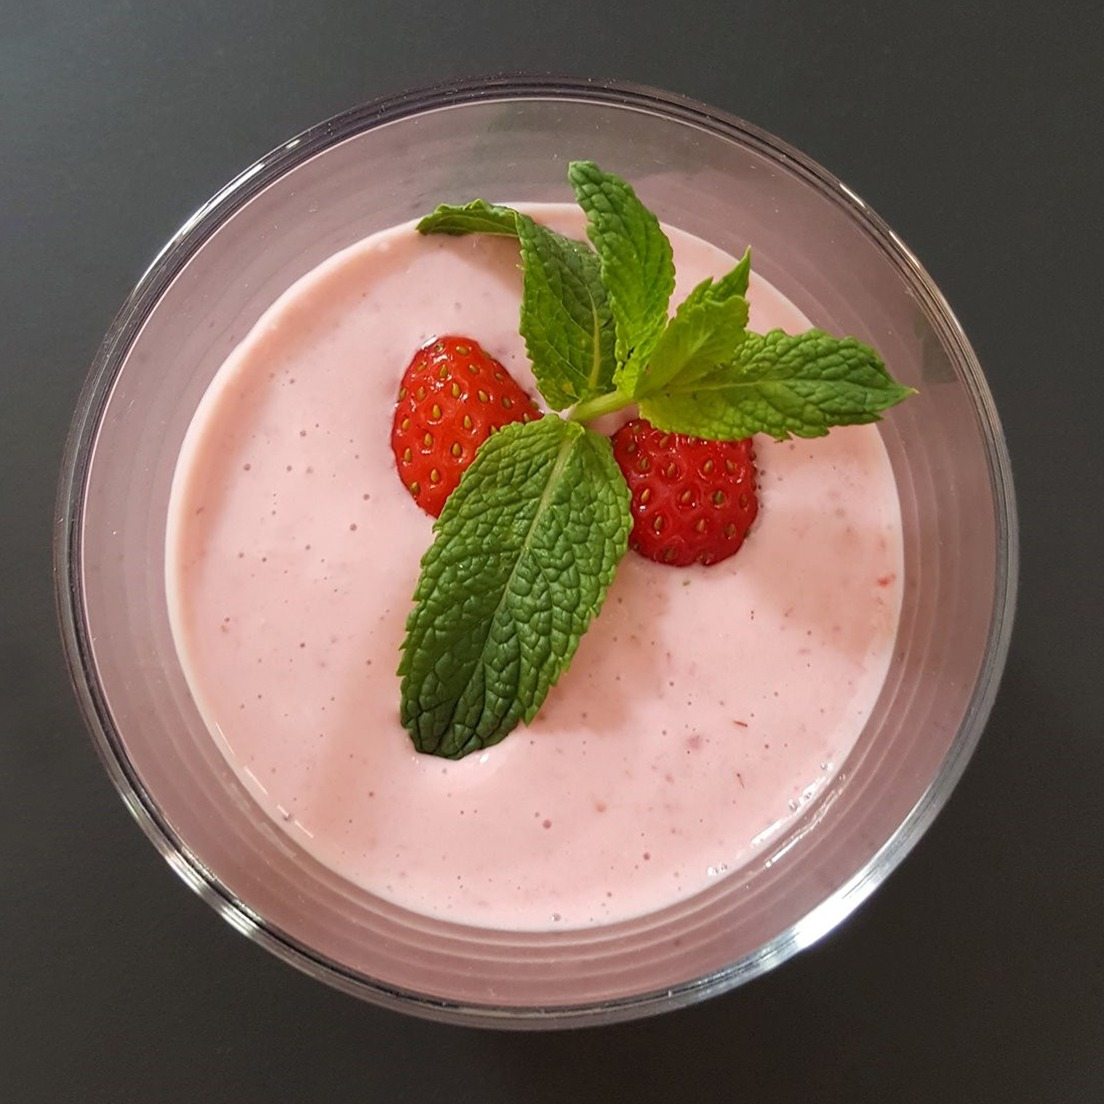 Main Mäuerle Smoothie